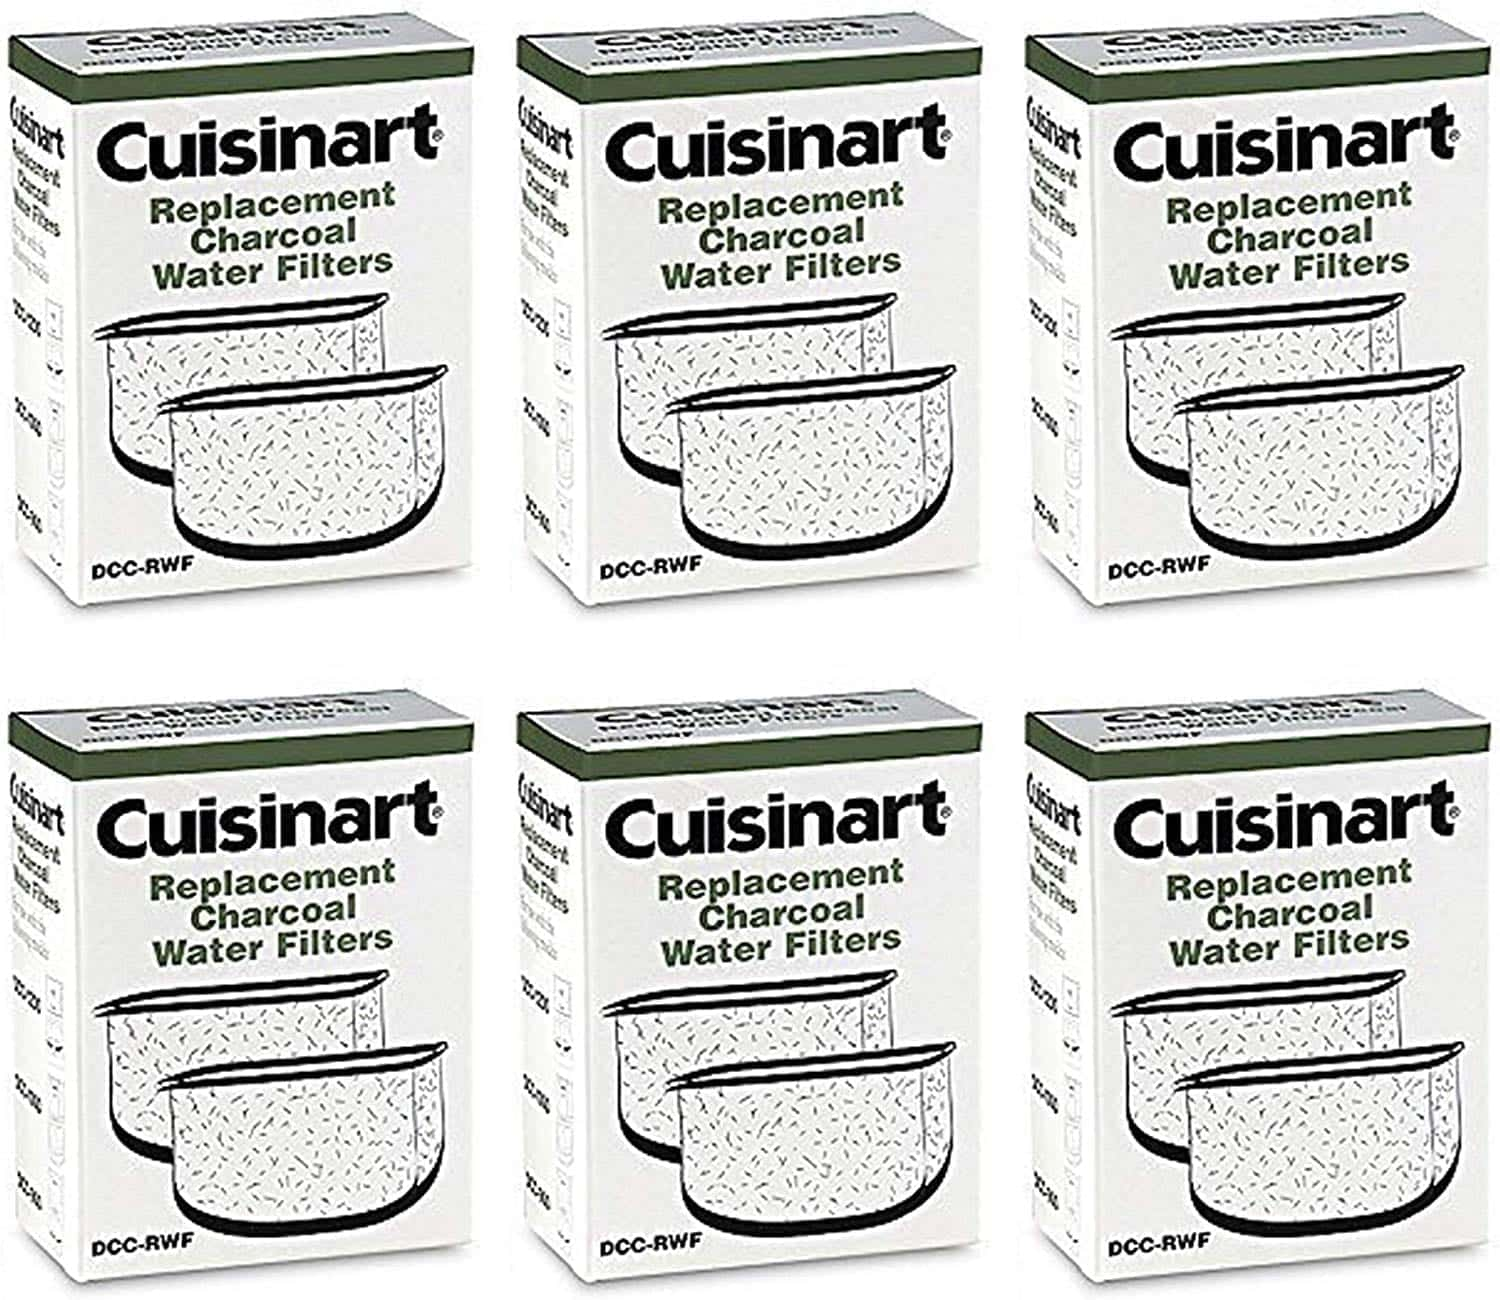 Cuisinart DCC-RWF-6PK Charcoal Water Filters